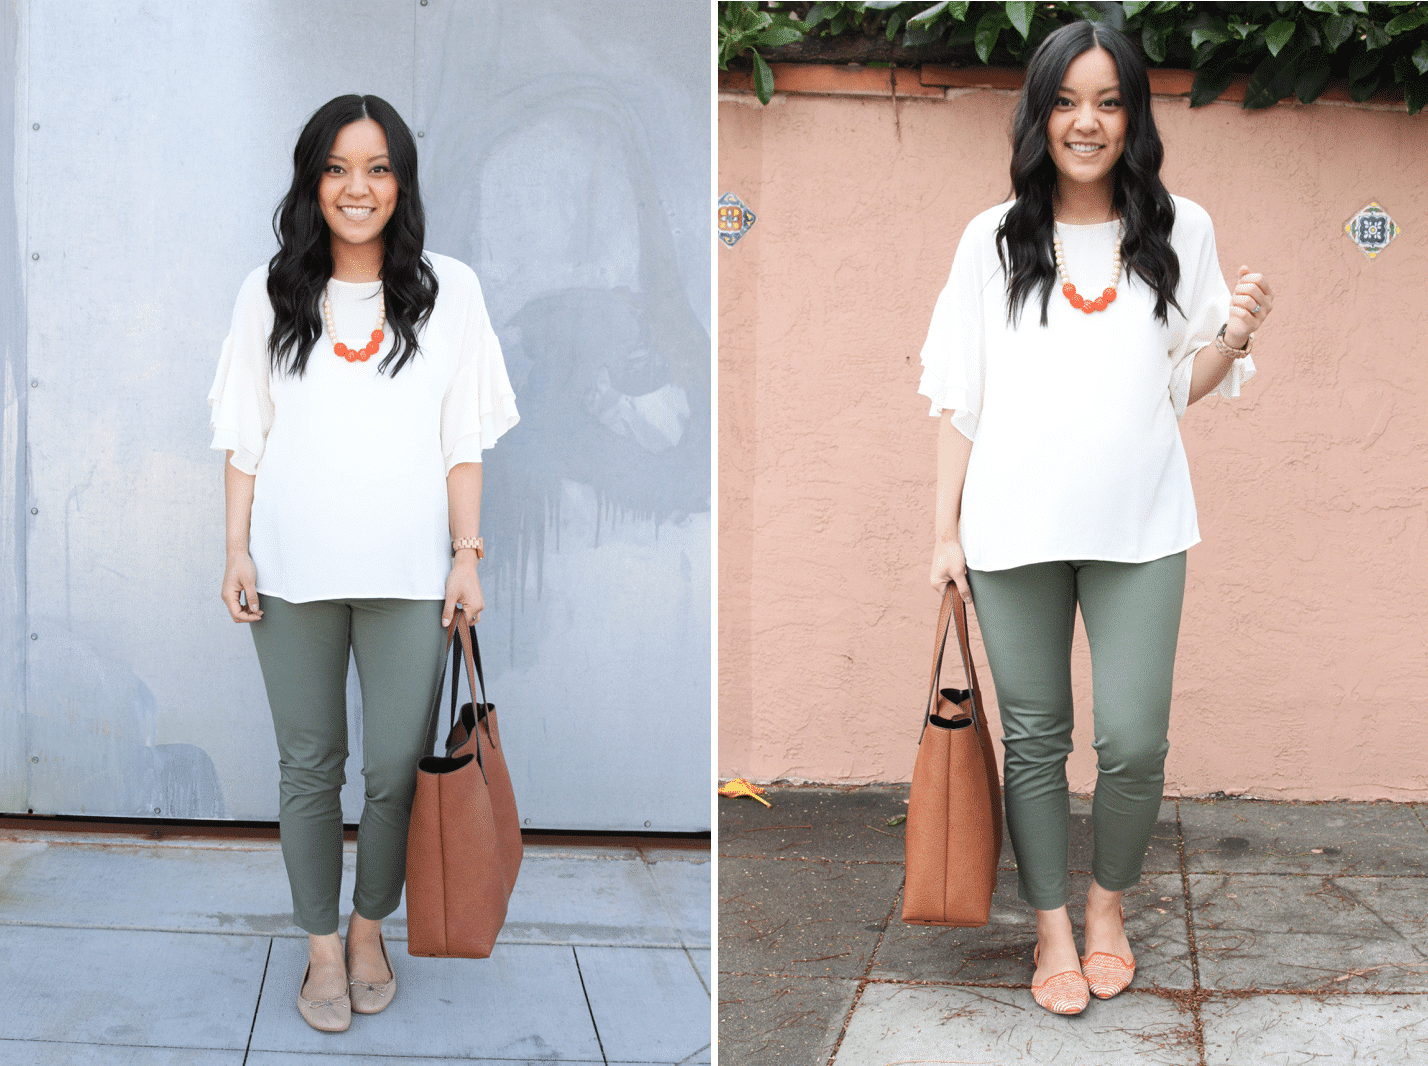 Making a Business Casual Outfits Interesting With Colored Flats